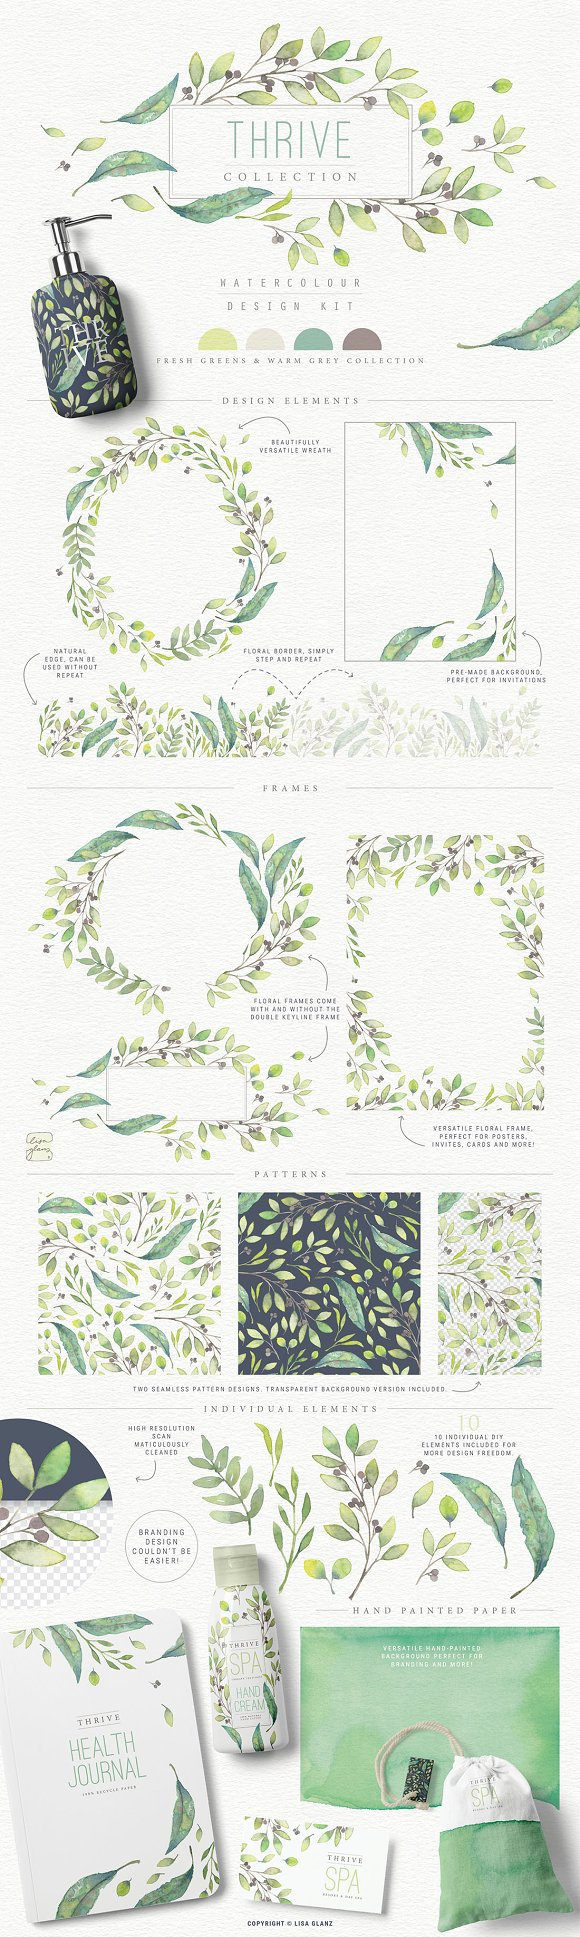 4in1 Elegant Watercolour collections in Illustrations - product preview 3